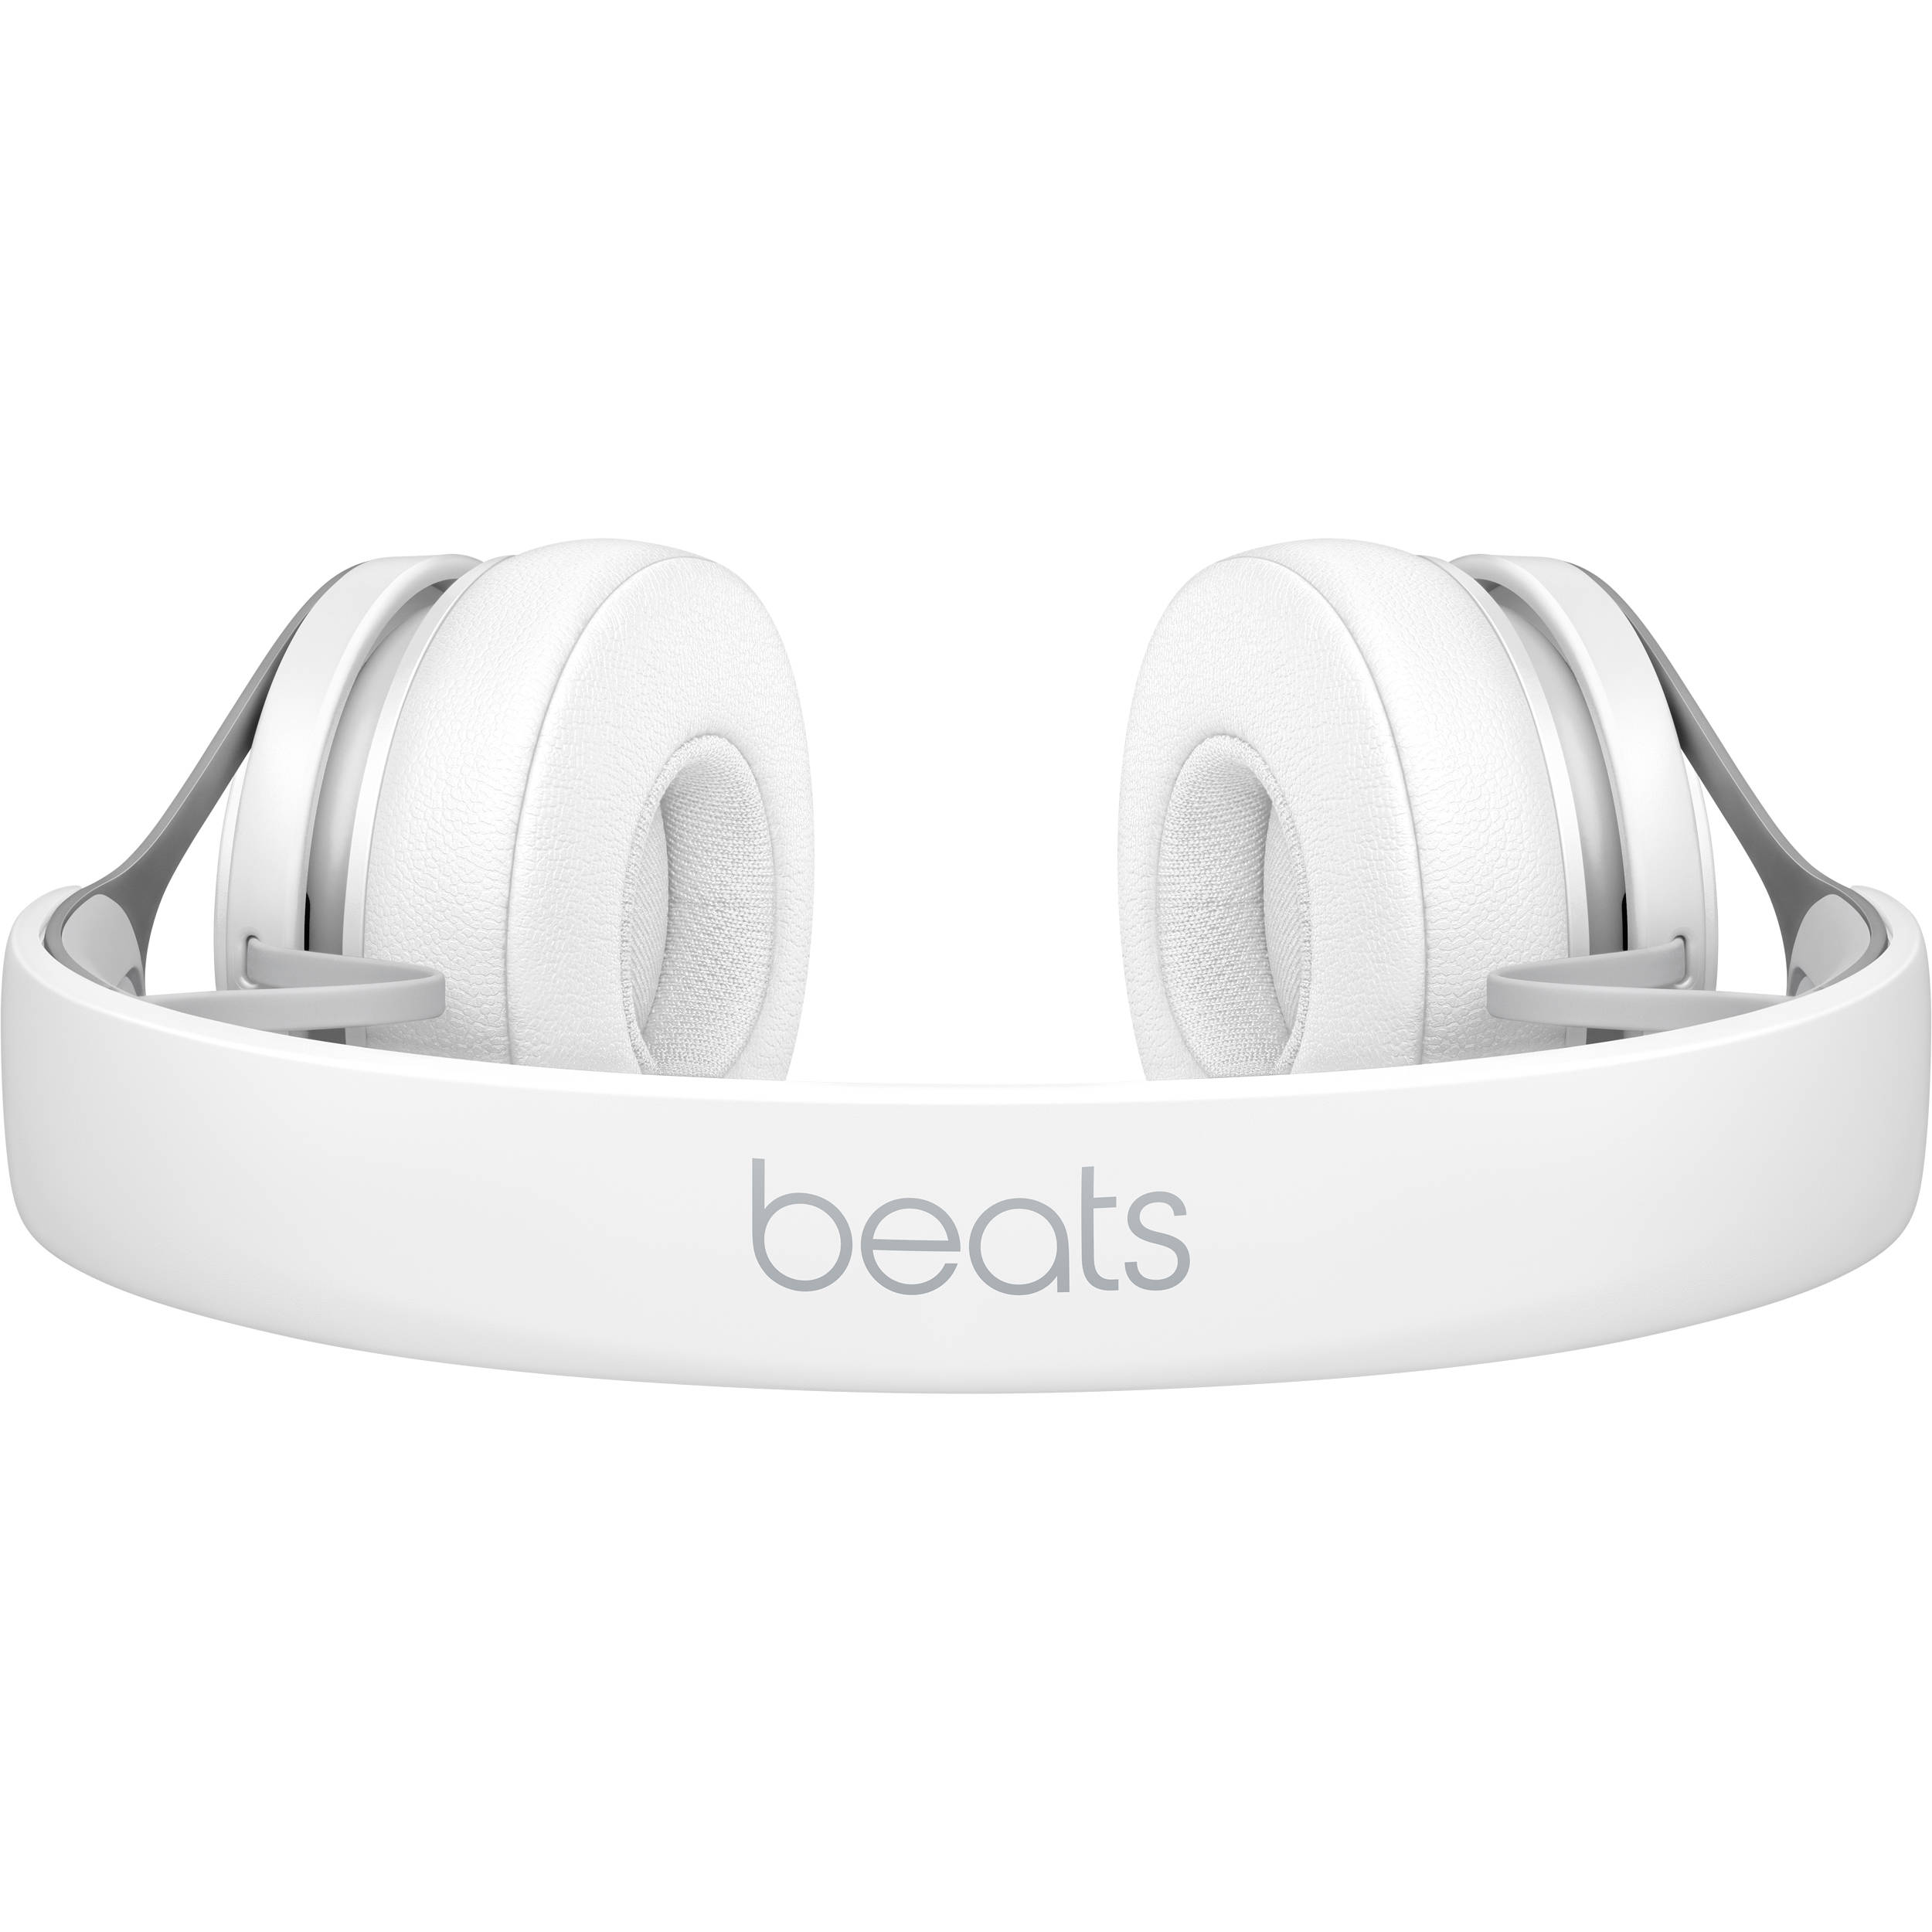 Beats By Dr Dre Beats Ep On Ear Headphones White Ml9a2ll A